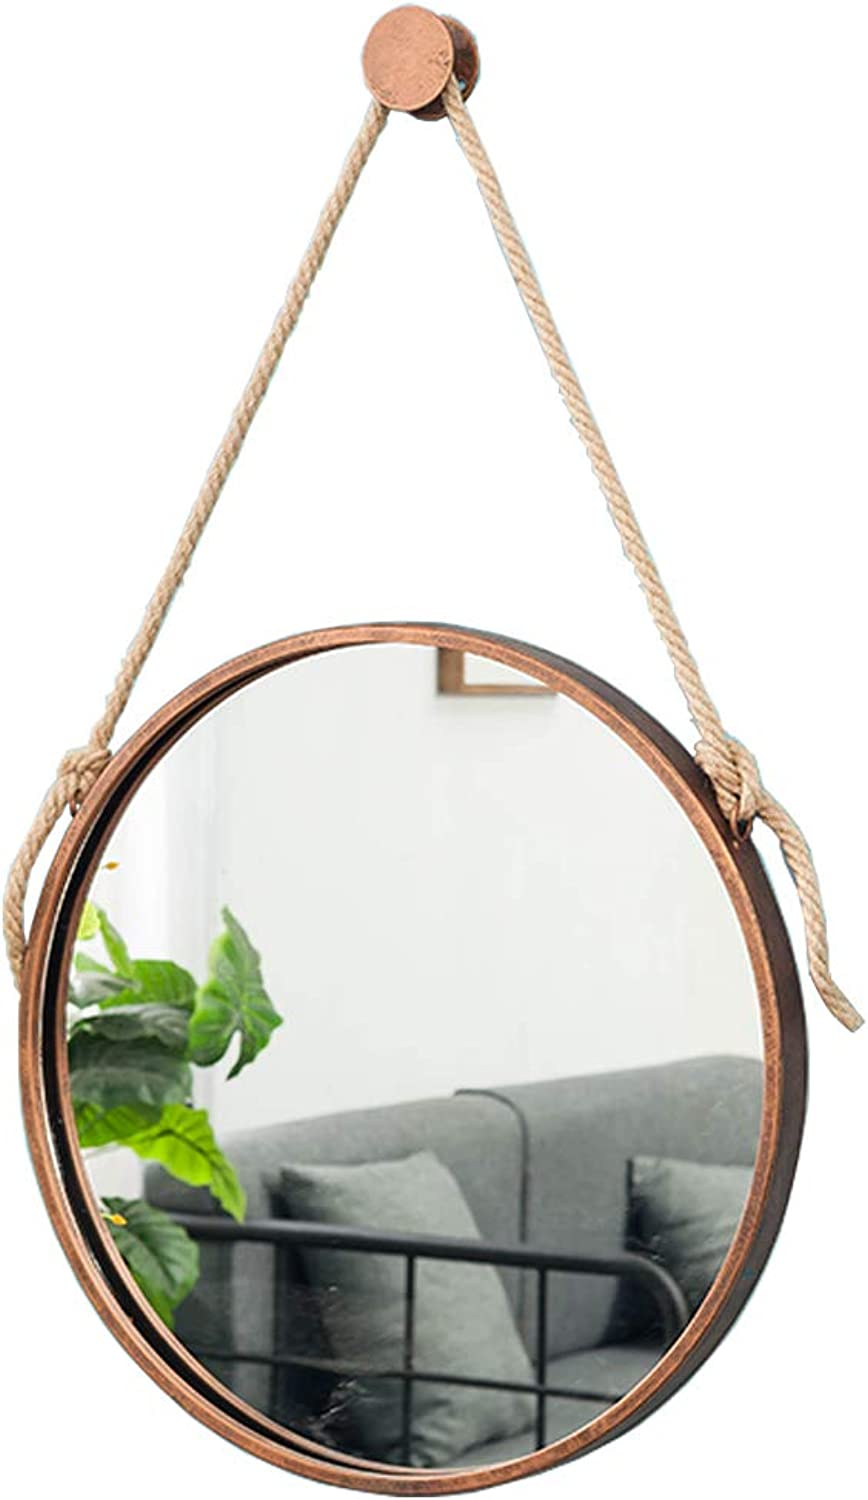 Decorative Mirror (Size   12-32Inch) Bronze Metal Wall Hanging Mirror with Hemp Rope Round Makeup Bathroom Mirrors Creative Vanity Shaving Iron Mirrors Large